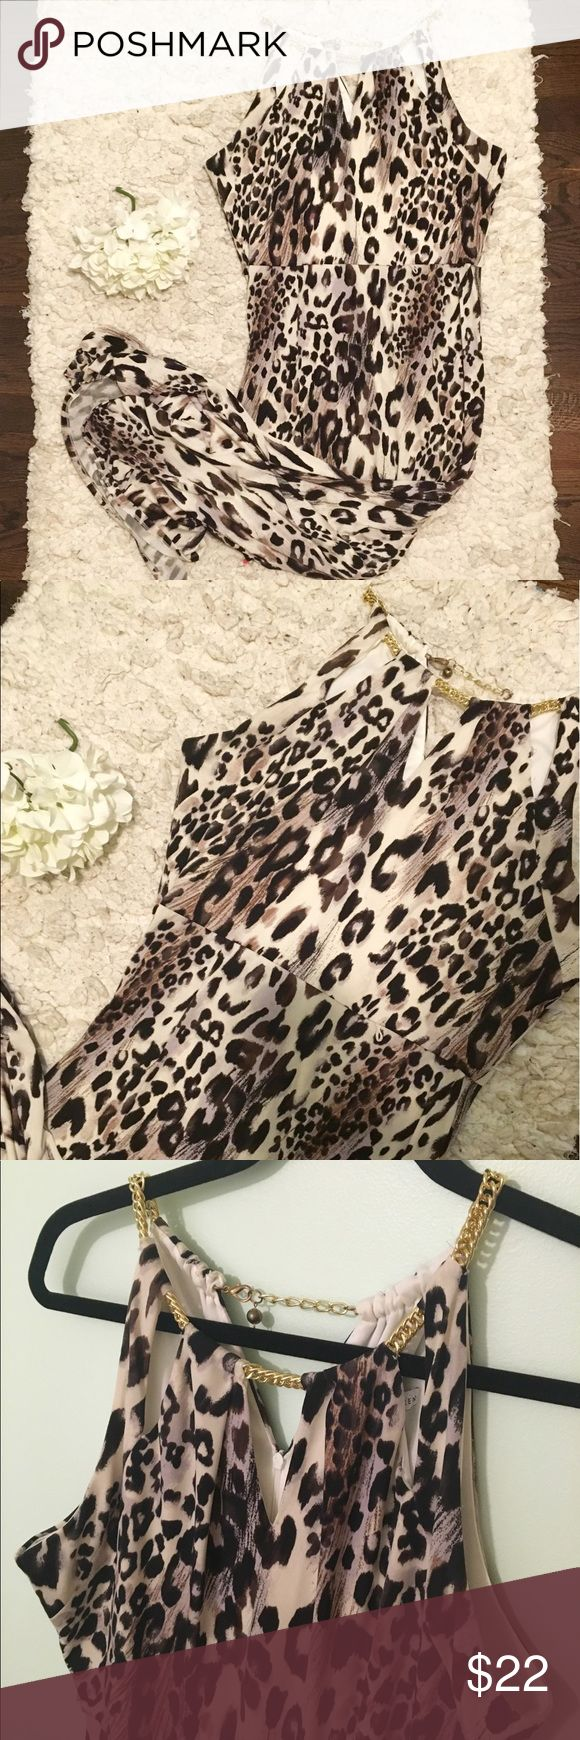 Sandra Darren leopard maxi dress Worn once, excellent condition. Beautiful gold chain detailing at neckline, back zipper, front slit that reaches to the knee. Stretch fabric, size 10. Sandra Darren Dresses Maxi